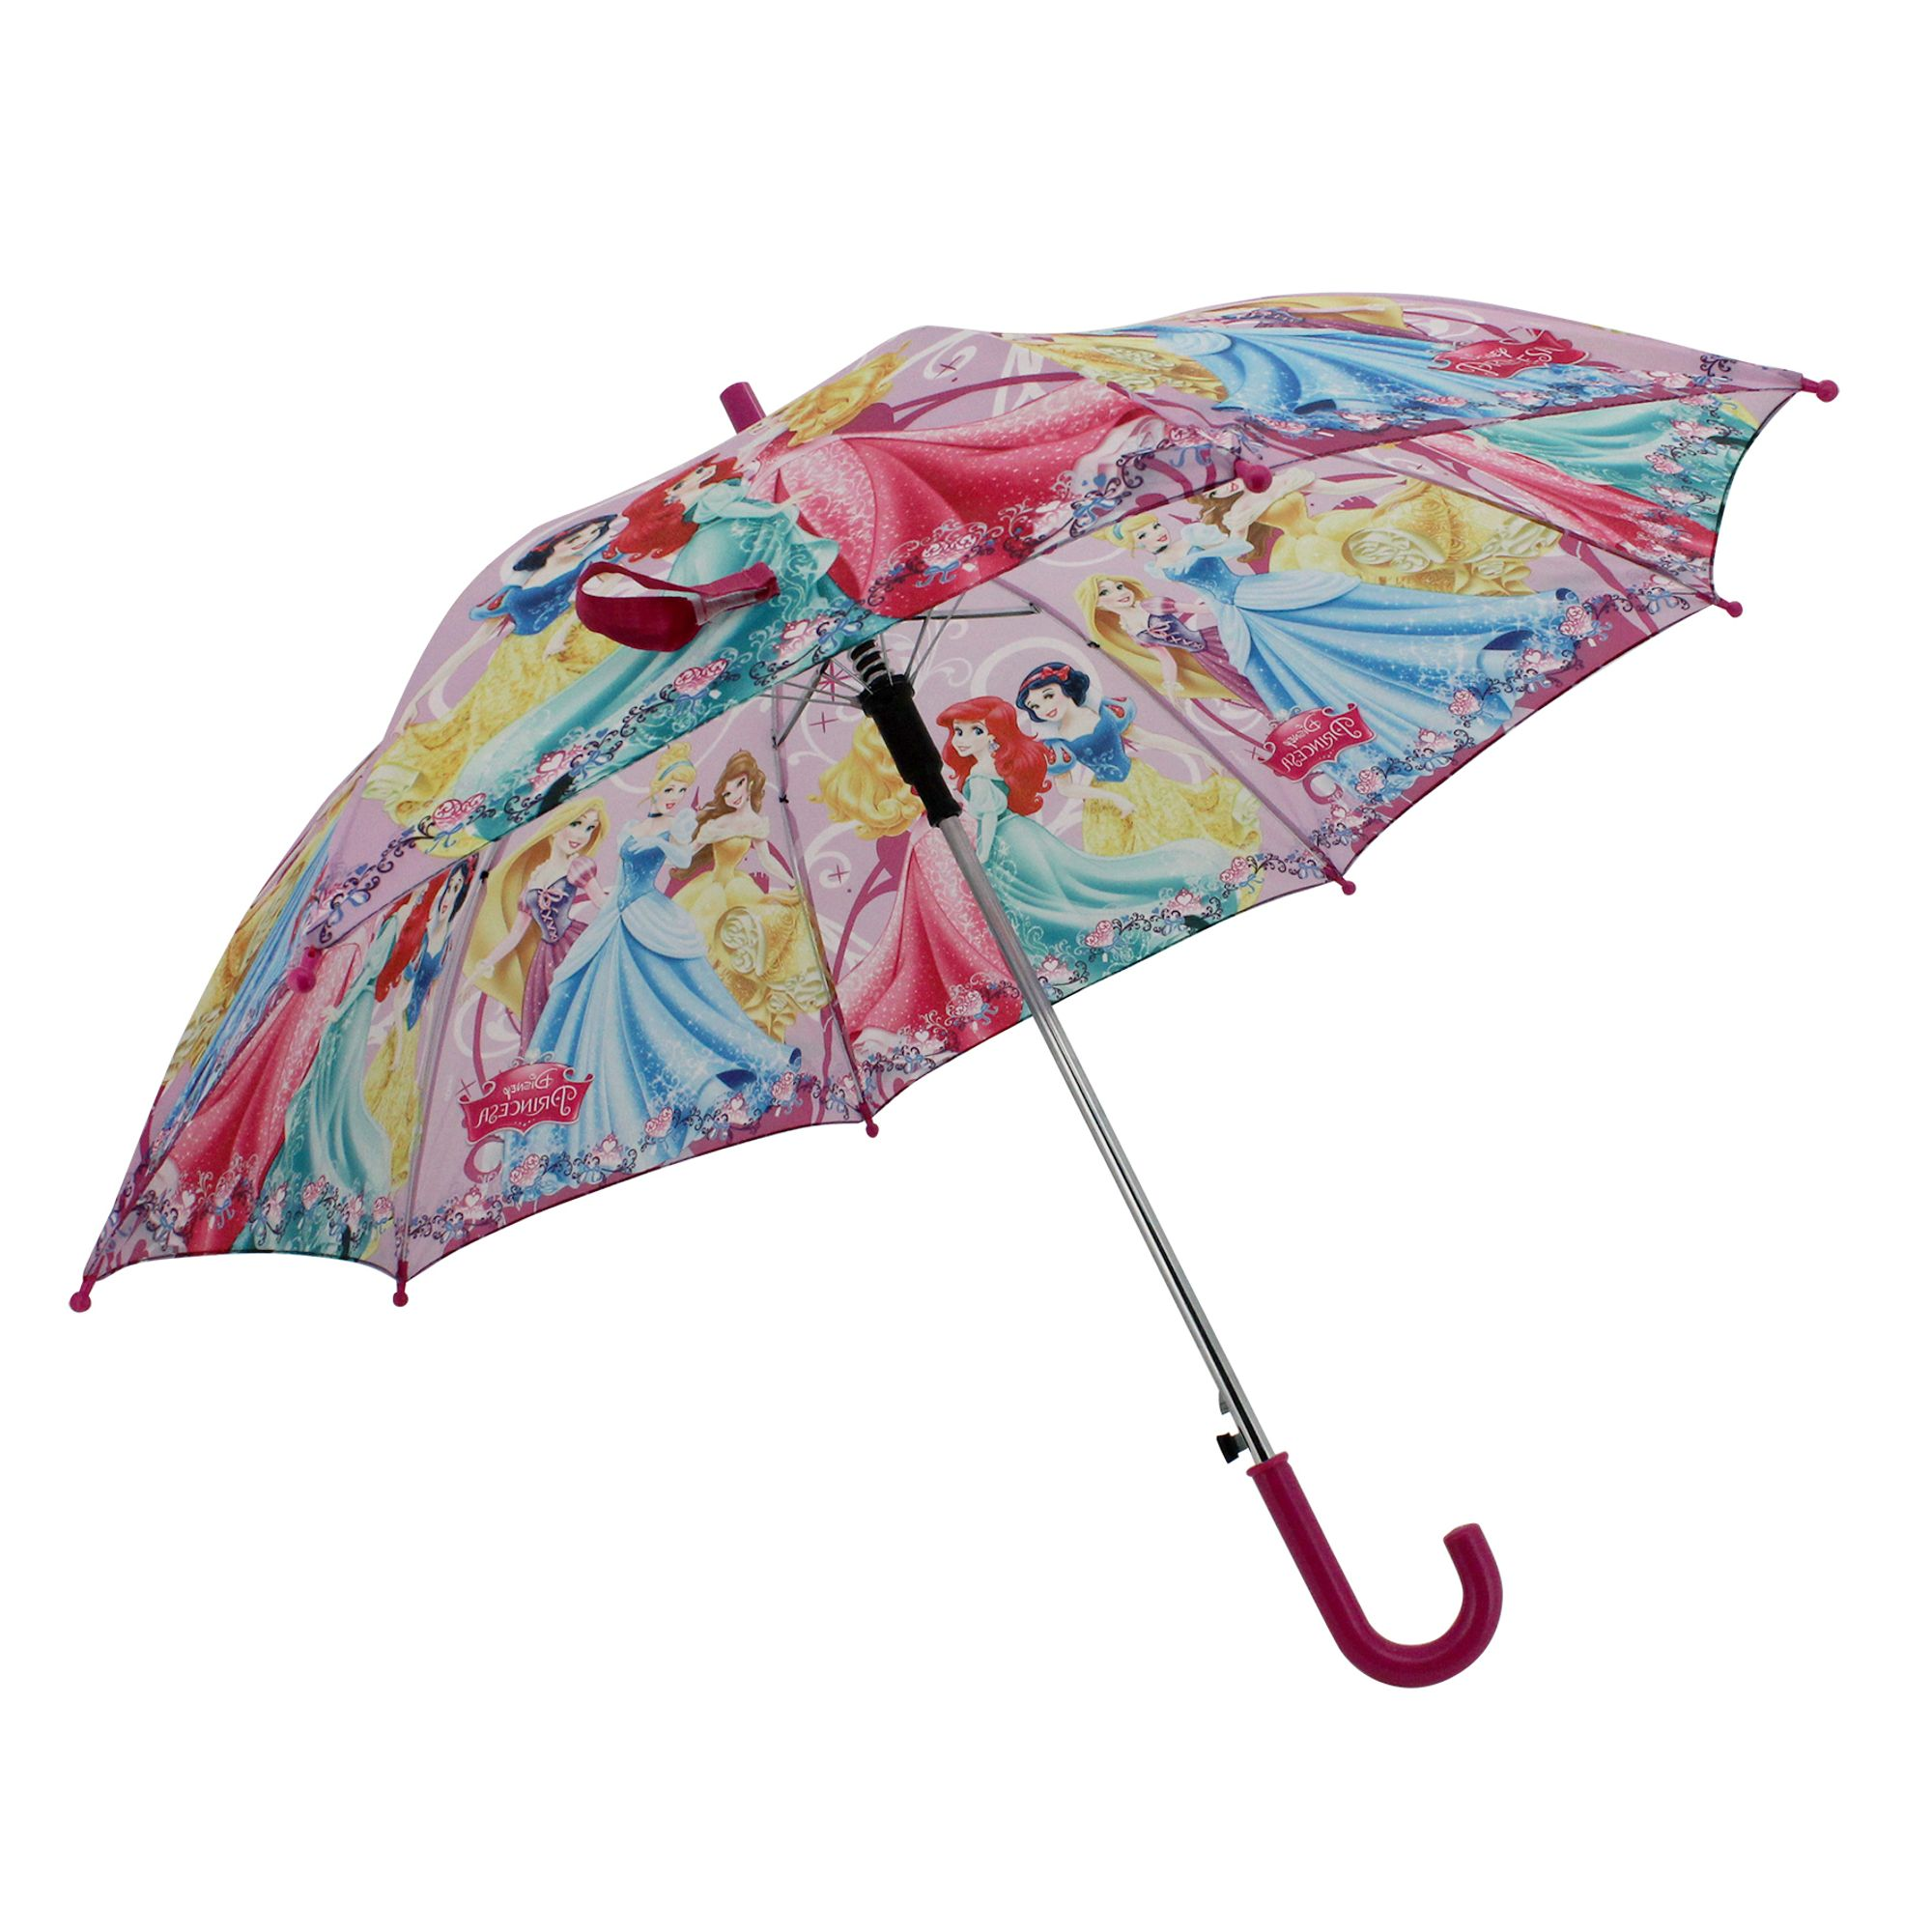 guarda-chuva-infantil-princesas-disney-1